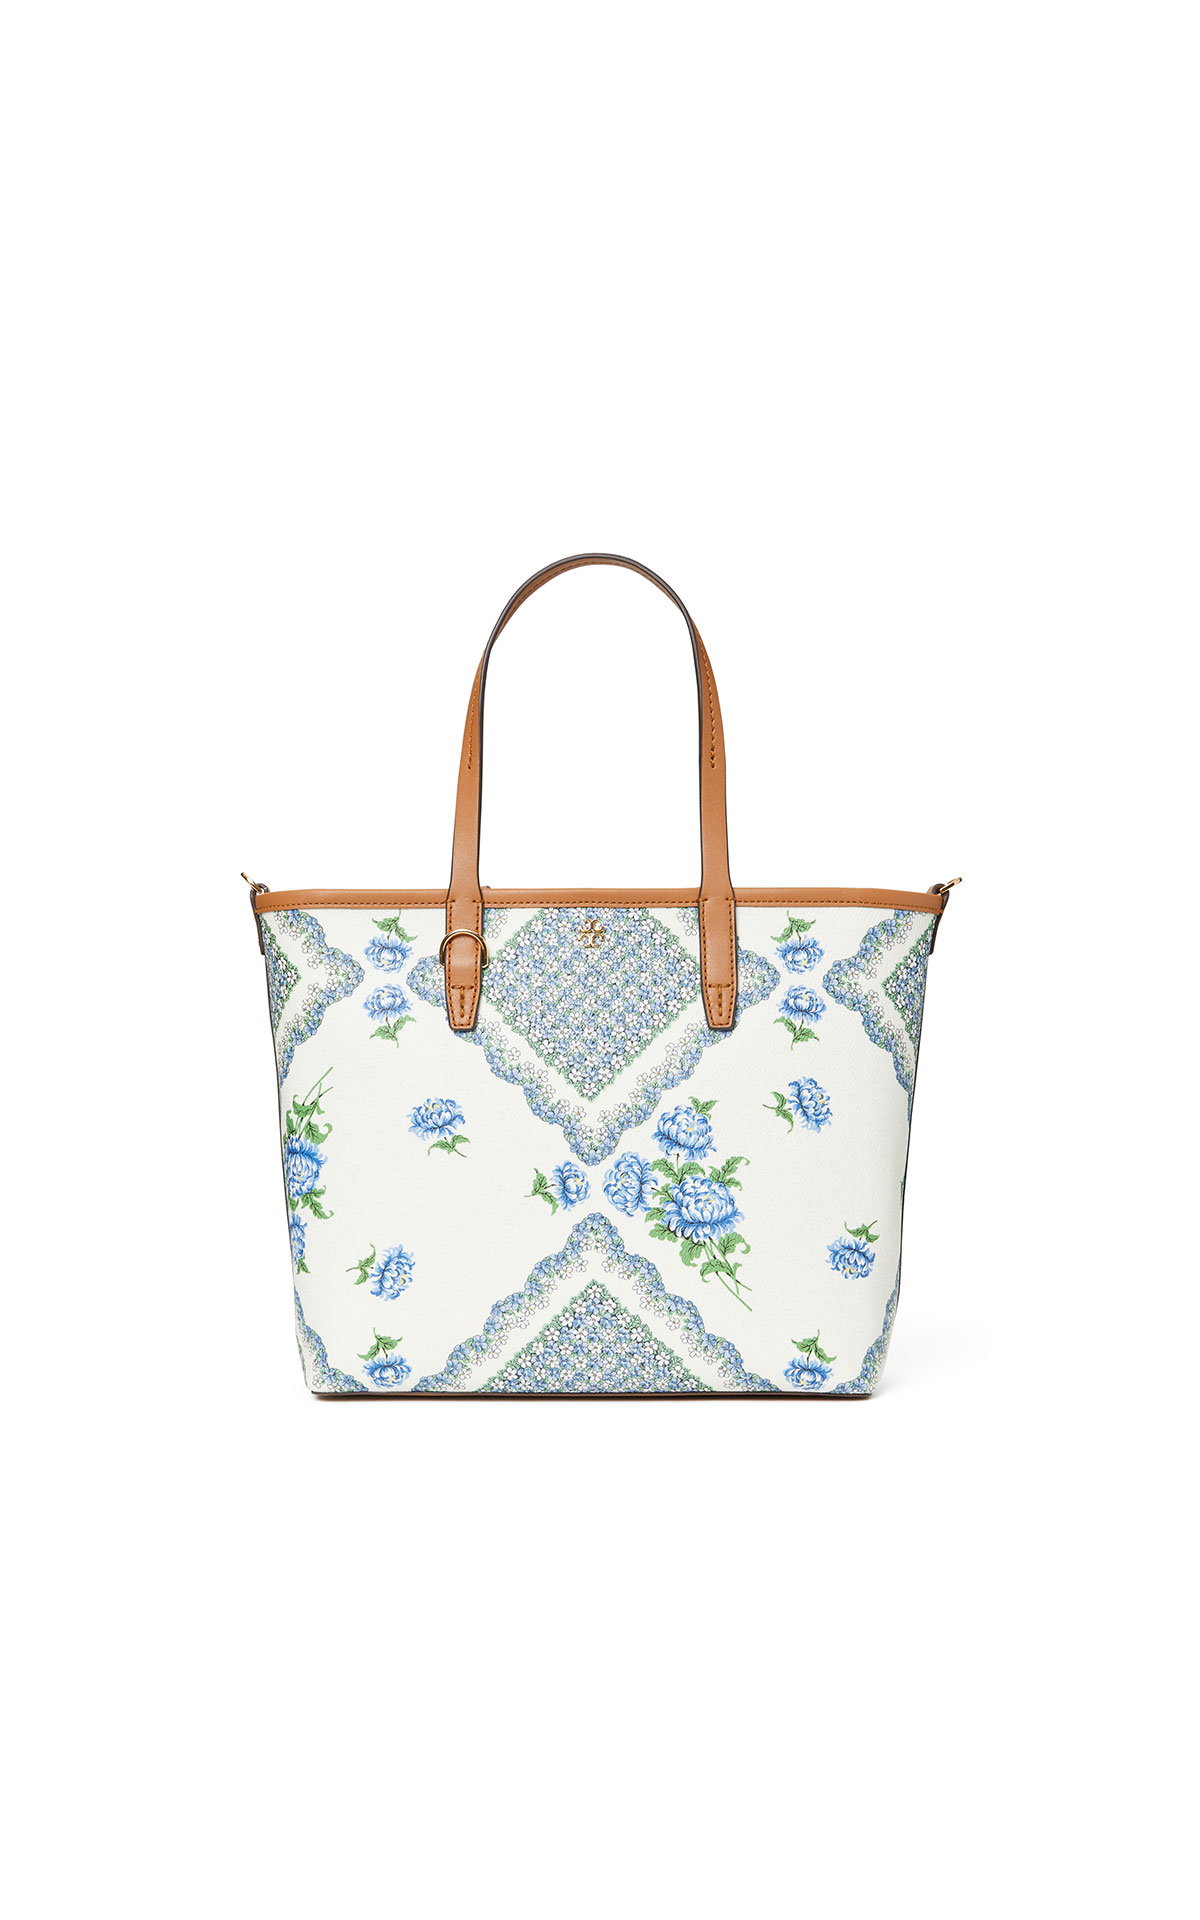 Tory Burch kerrington small zip tote at the Bicester Village Shopping Collection